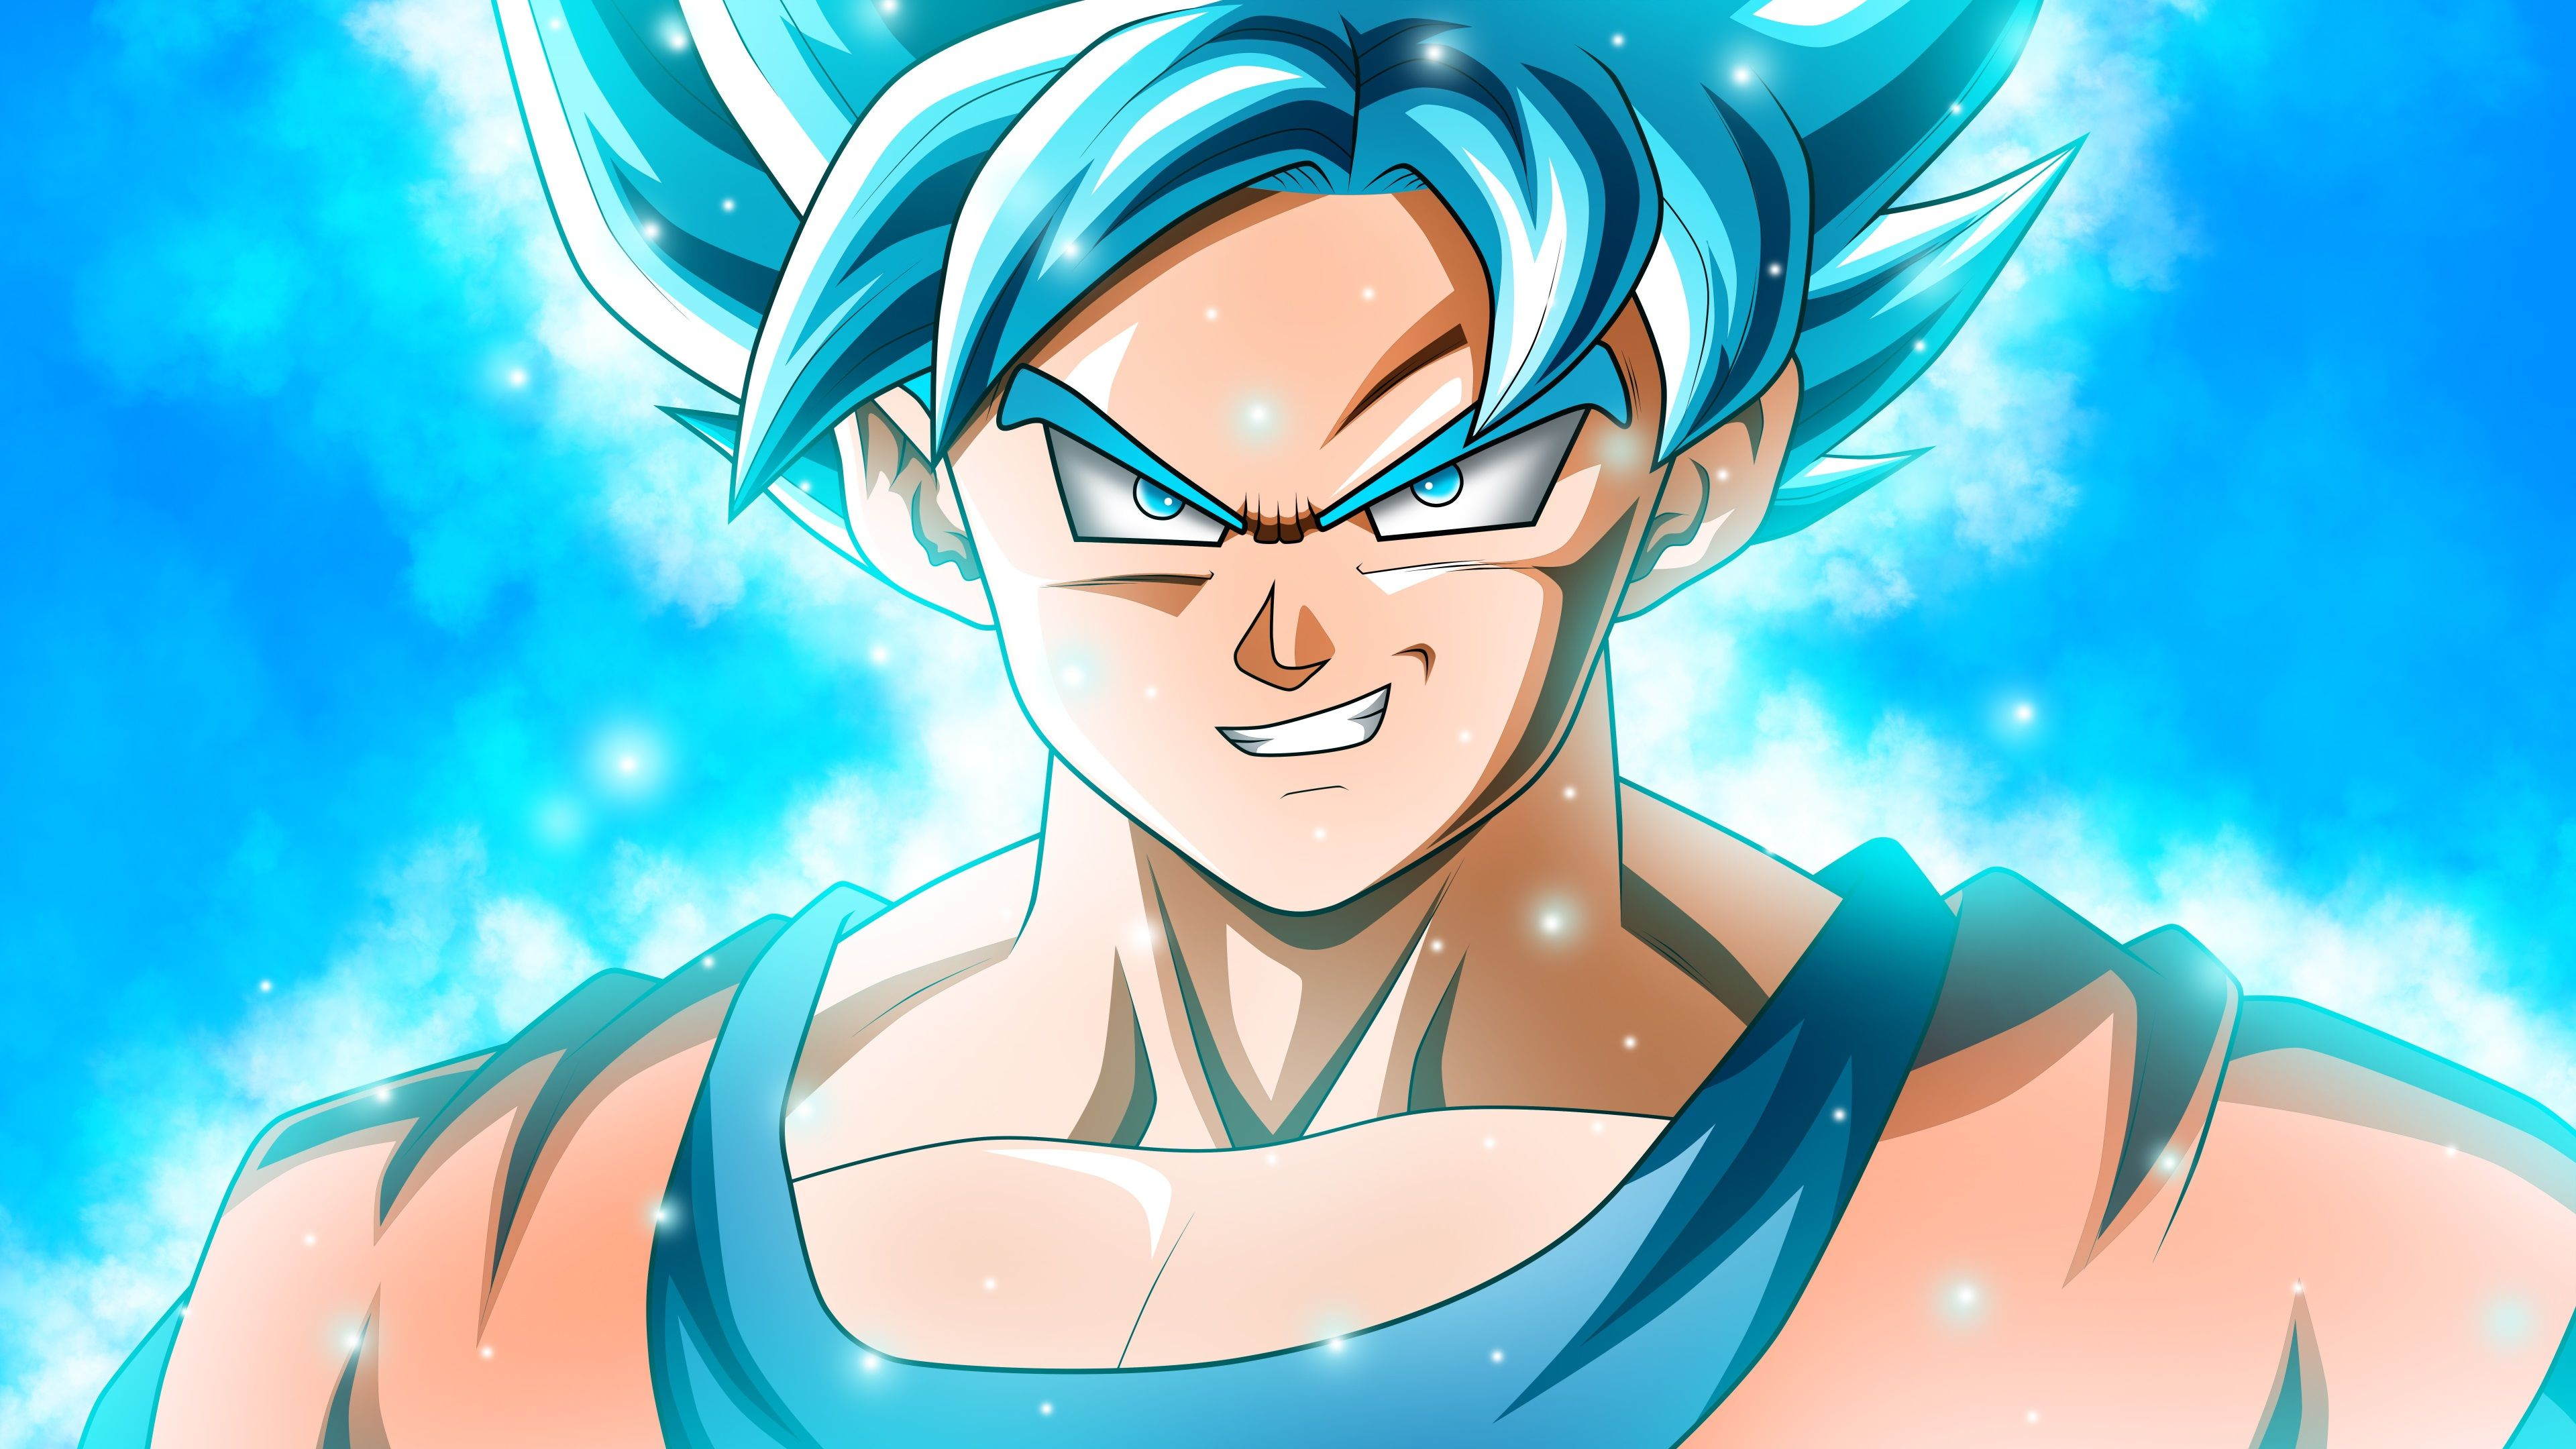 3840x2160 Goku 4k Hd High Resolution Wallpaper Dragon Ball Super Wallpapers Goku Wallpaper Dragon Ball Wallpapers